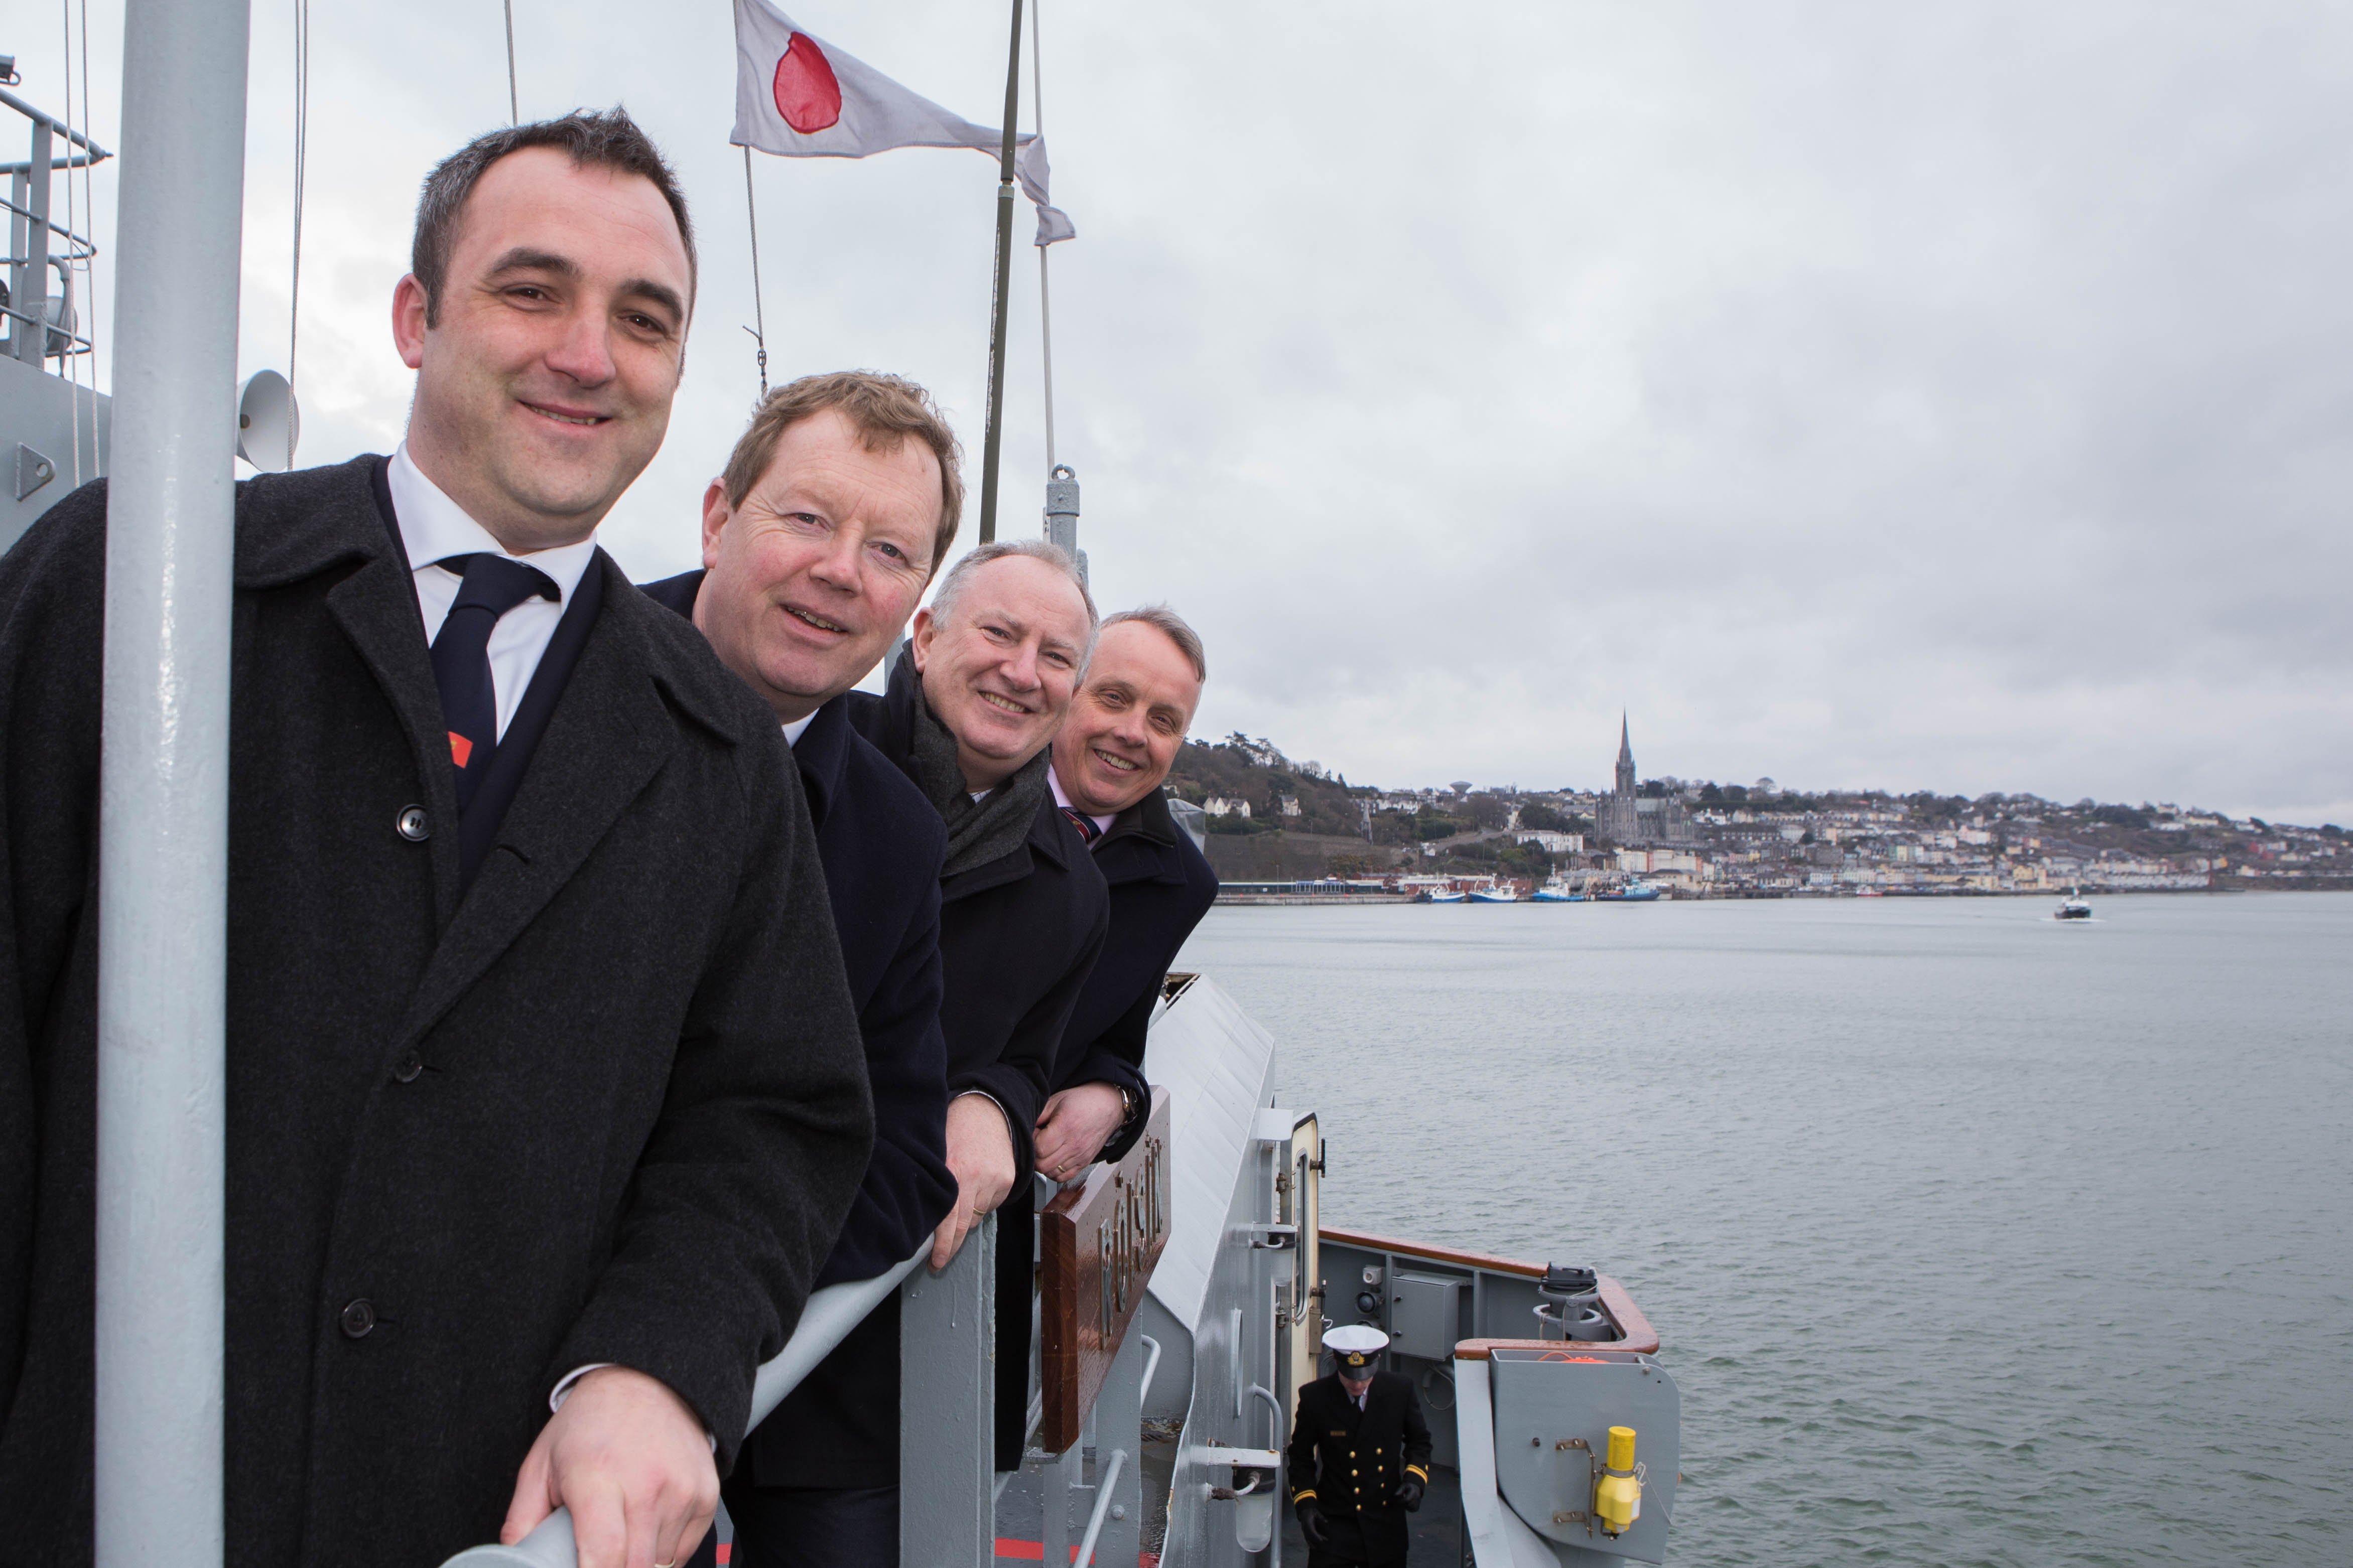 DKANE 04/03/2016 REPRO FREE Kieran O'Connell, Chairman of Volvo Cork Week, John Roche, Admiral Royal Cork Yacht Club, Adrian Yates, MD Volvo Car Ireland and Mark Whitaker, Johnson & Perrott Motor Group at the launch of the Volvo Cork Week 2016 onboard the L.É. RÓISÍN. Pic Darragh Kane